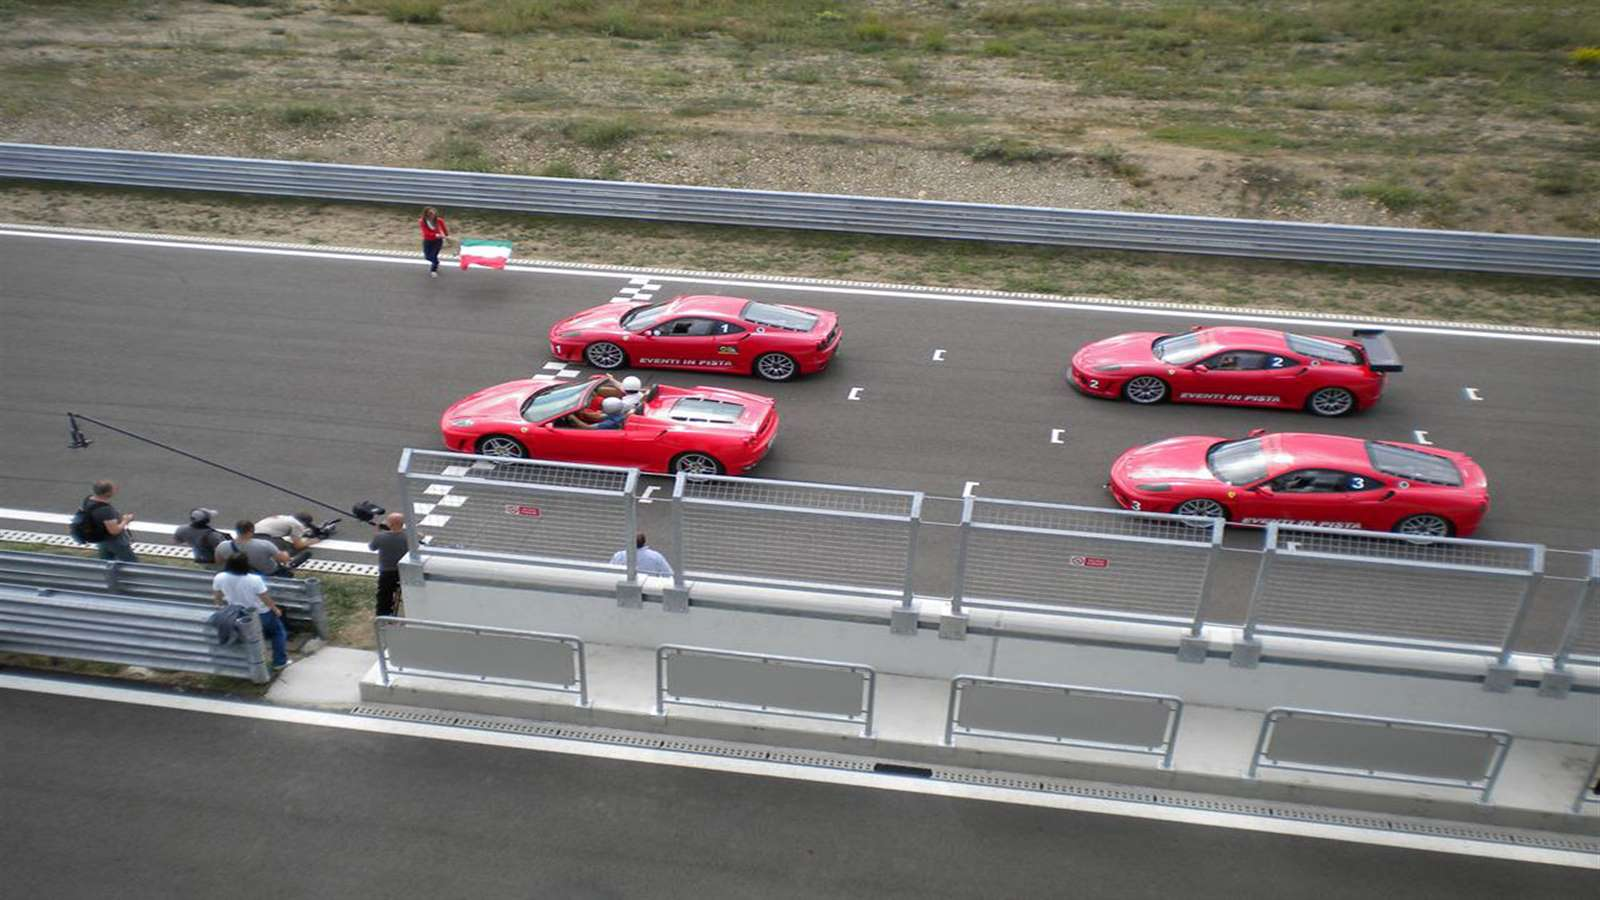 Ferrari in pista team building